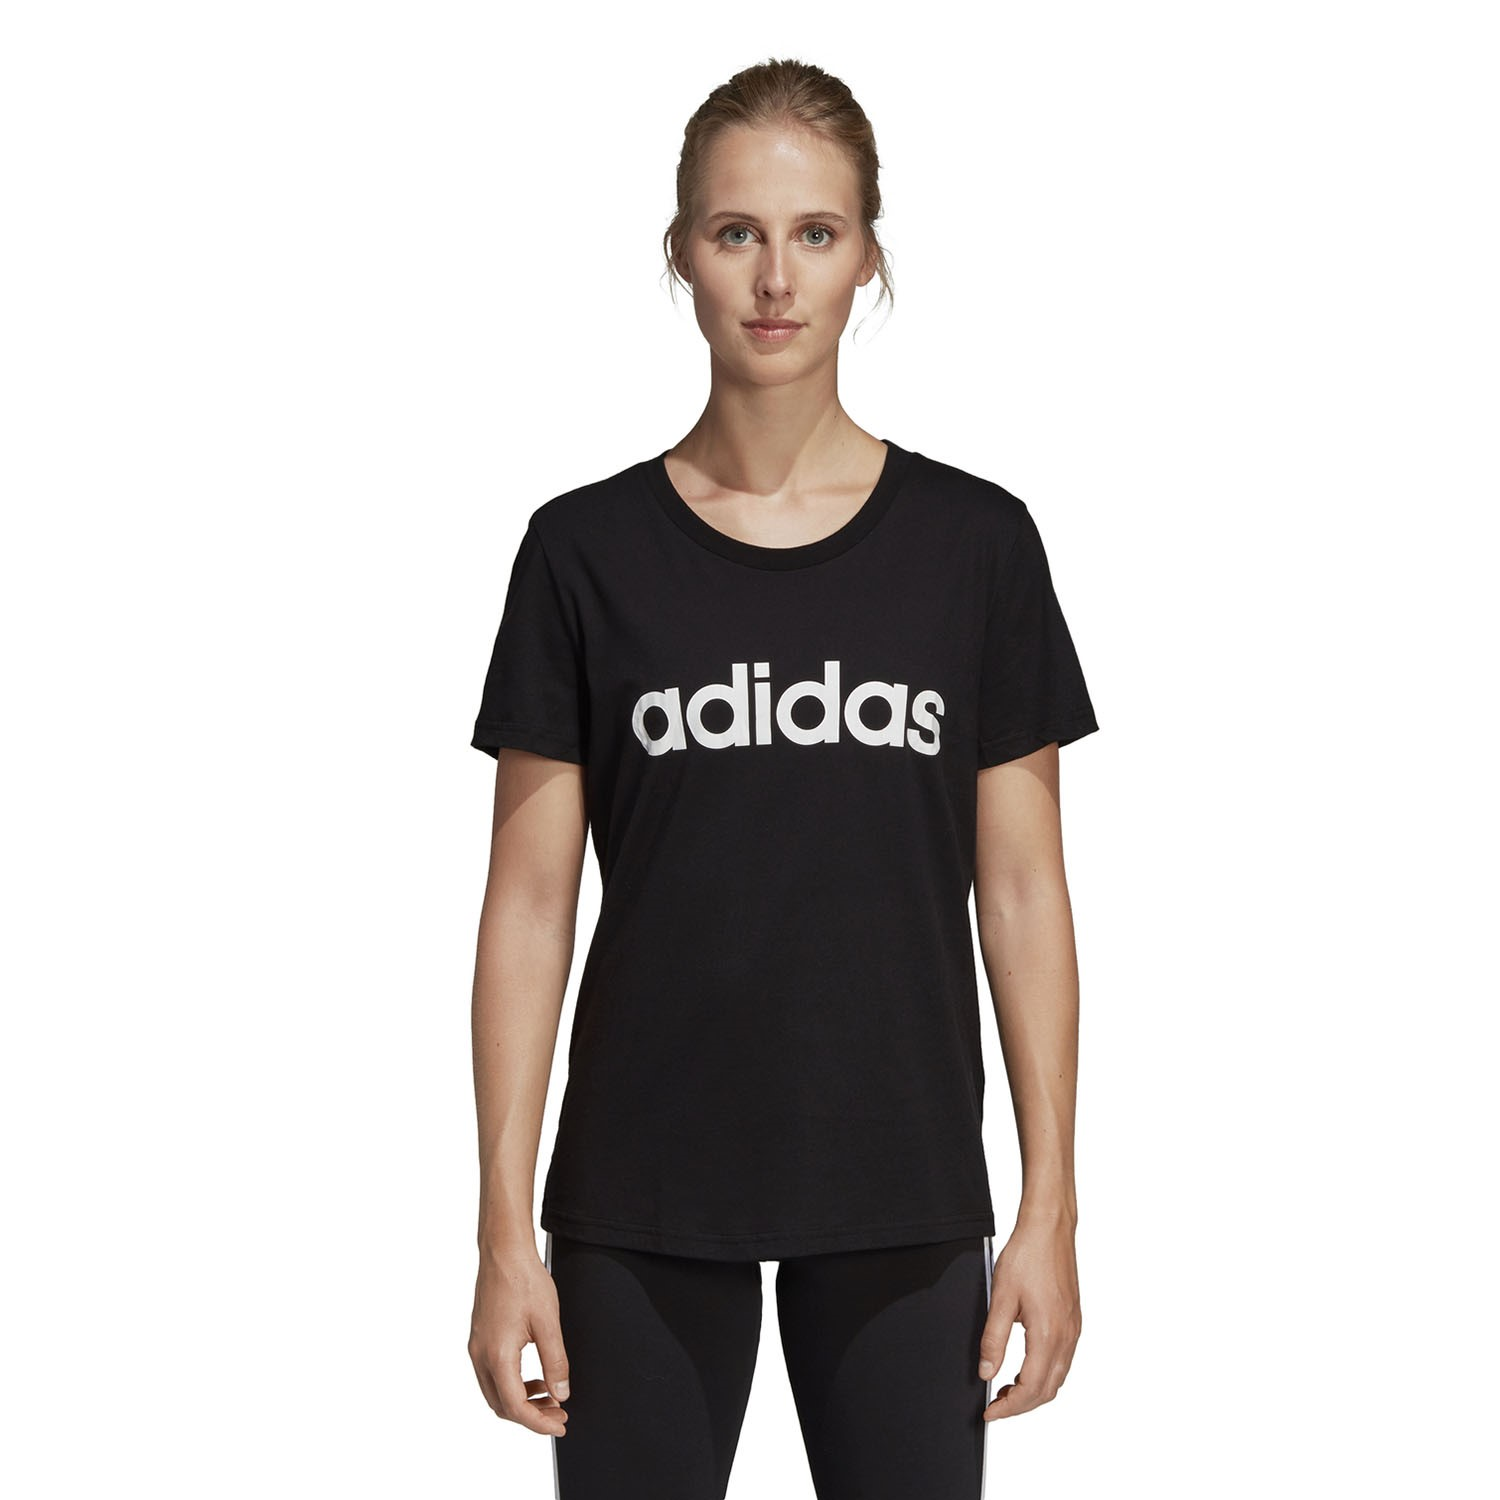 Adidas Essentials Linear Womens Slim T-Shirt - Black White  e9a77fbe0f0